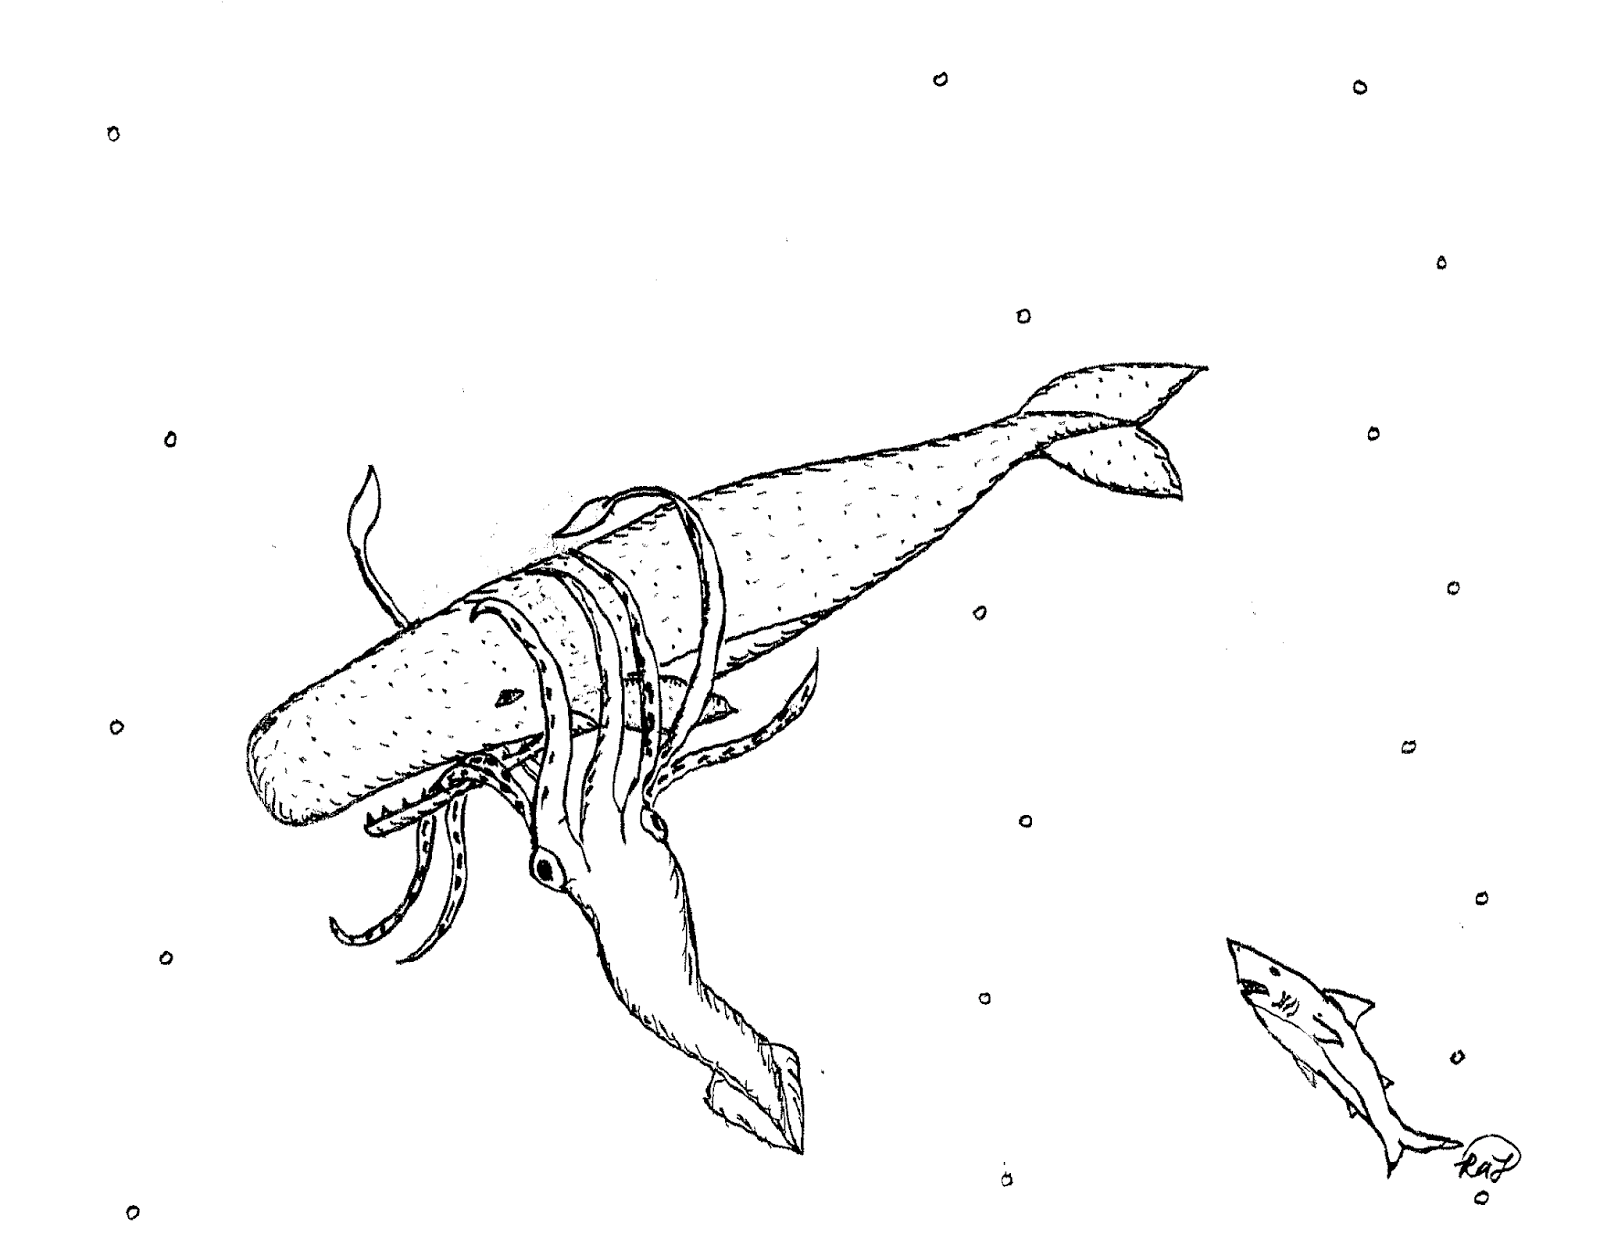 Robin 39 s great coloring pages sperm whale vs giant squid for Giant squid coloring pages